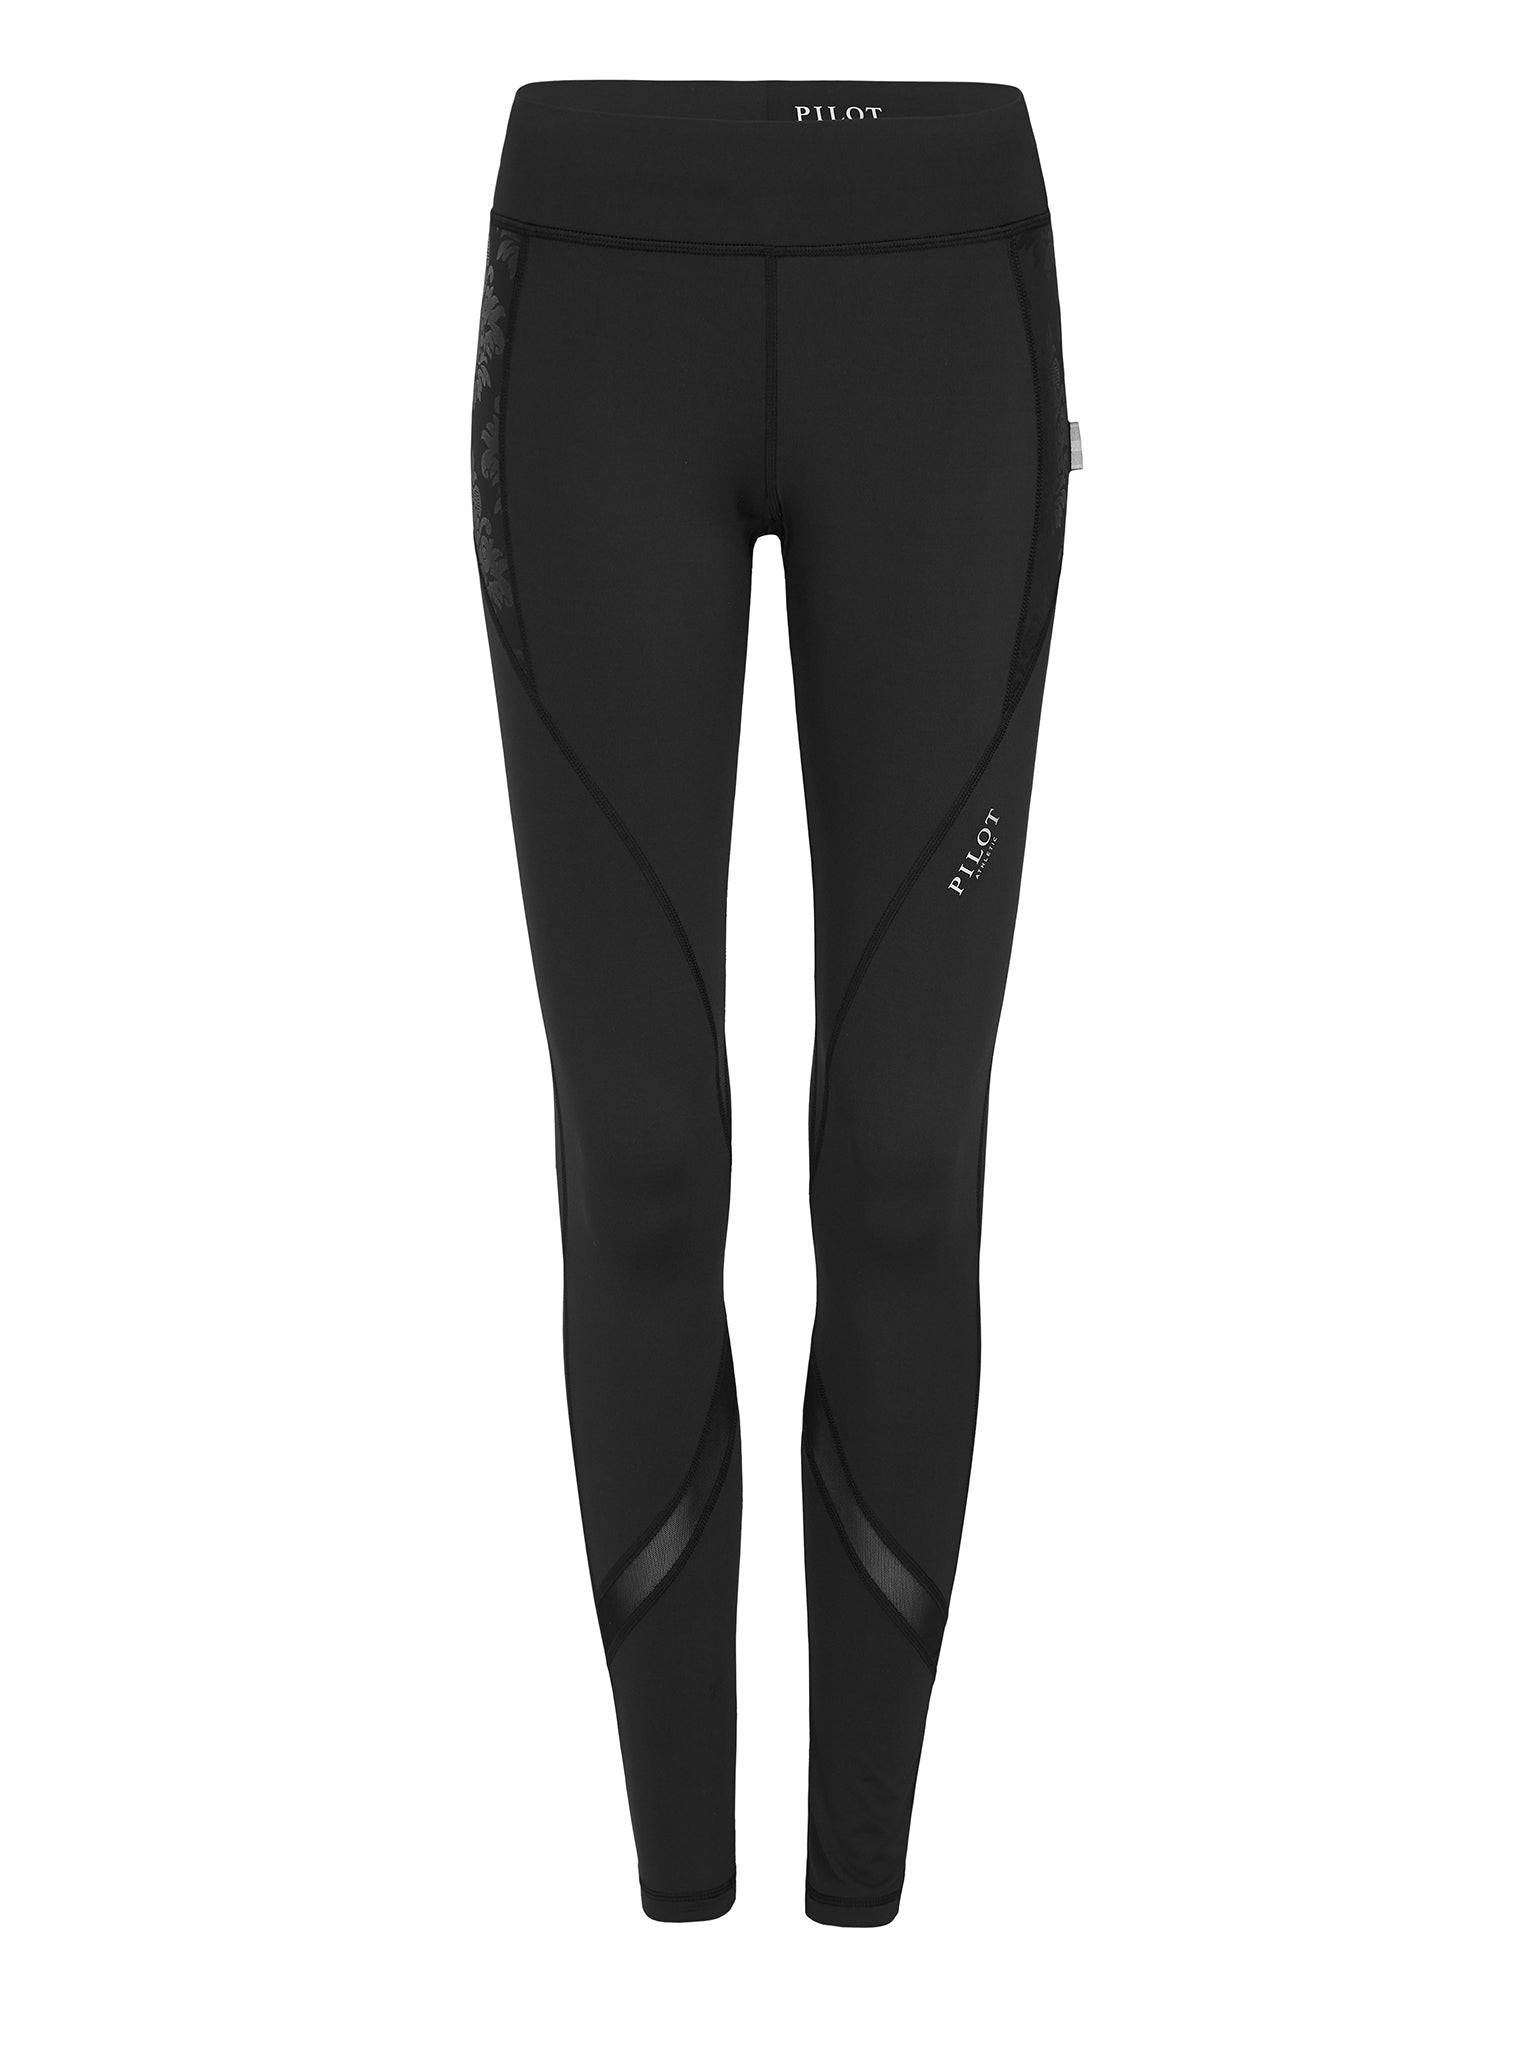 AVIATRIX FULL LENGTH BLACK FLORAL MESH TIGHT